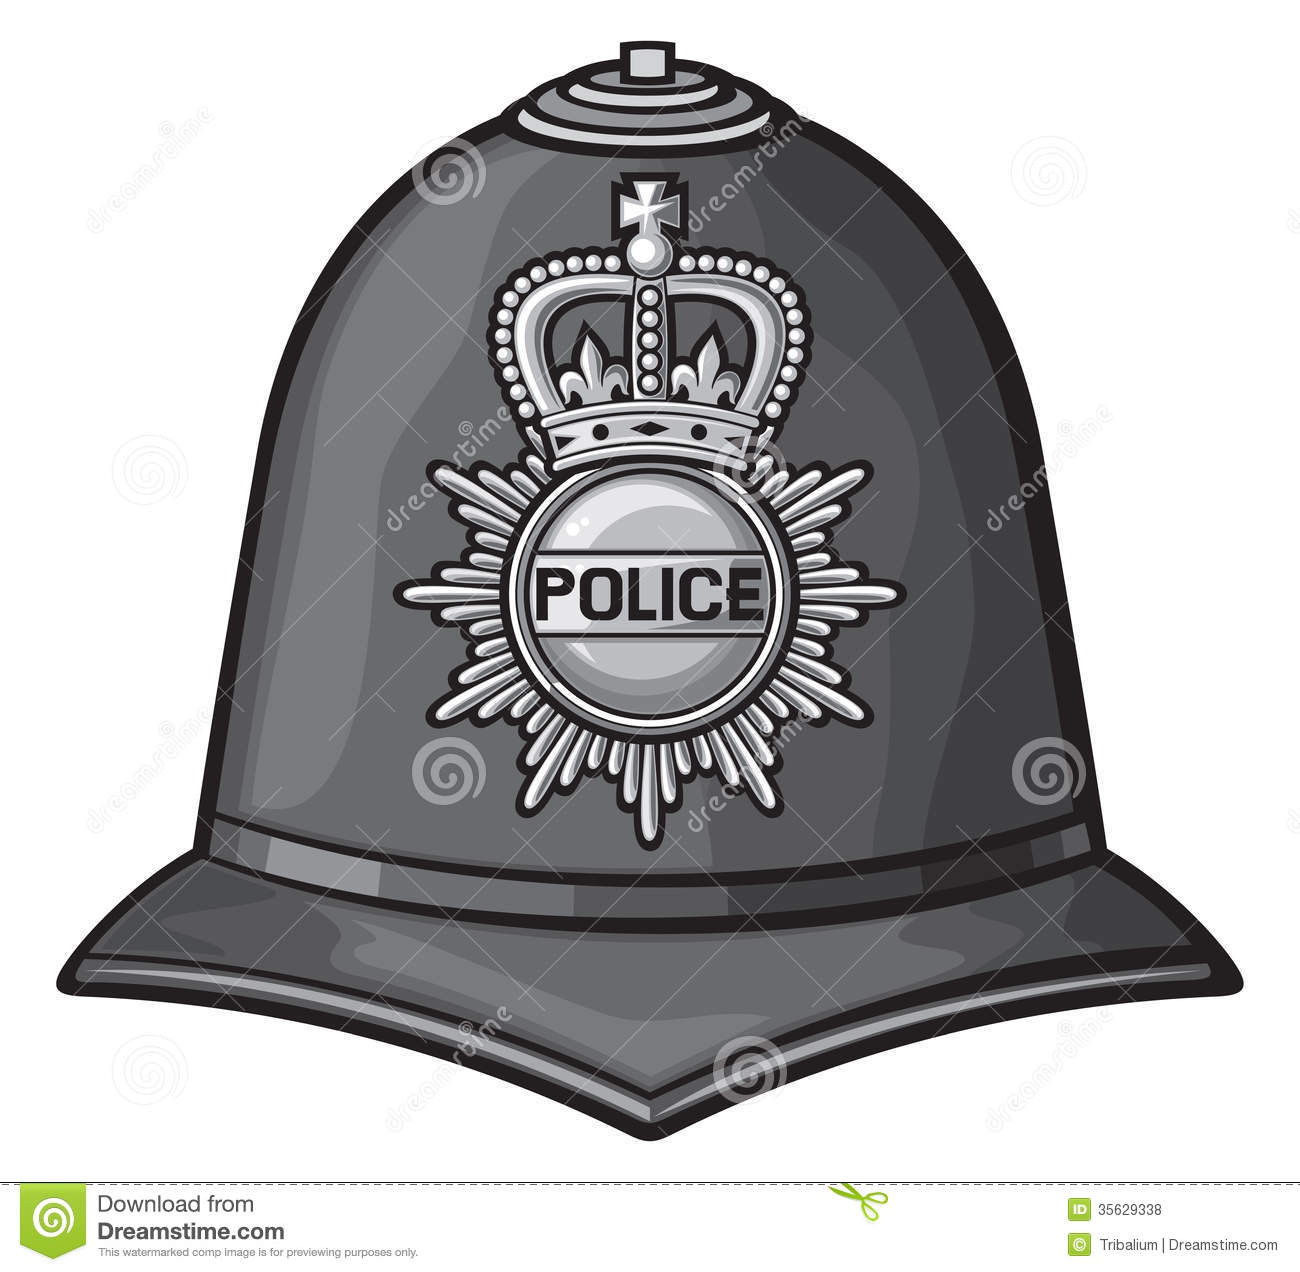 Police hat clipart picture library download Police Hat Clip Art British Police Helmet Royalty #L0ROvP ... picture library download